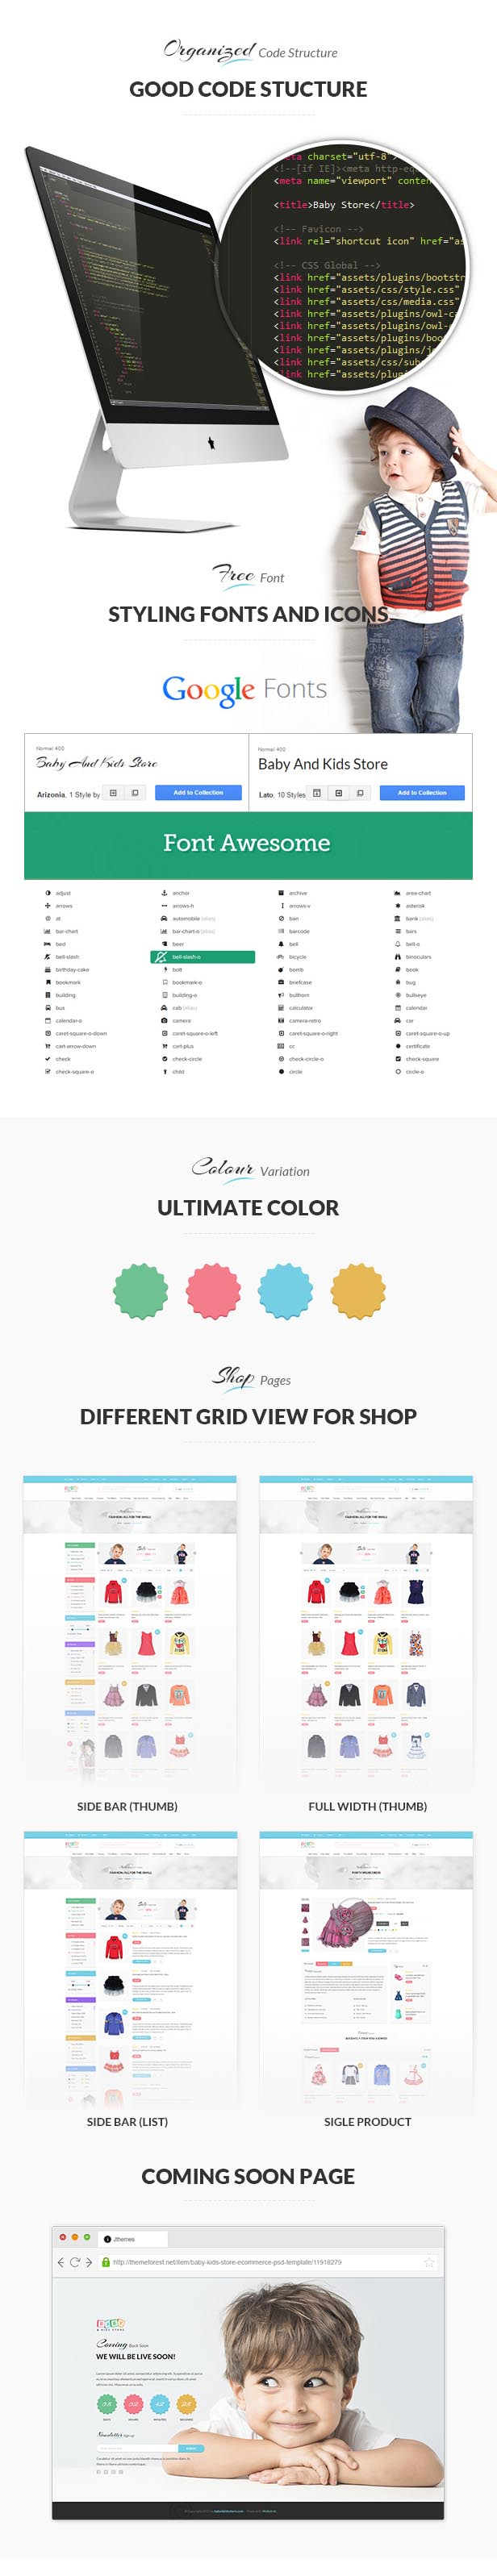 Baby Store - Clean, responsive Shopify themes - 4